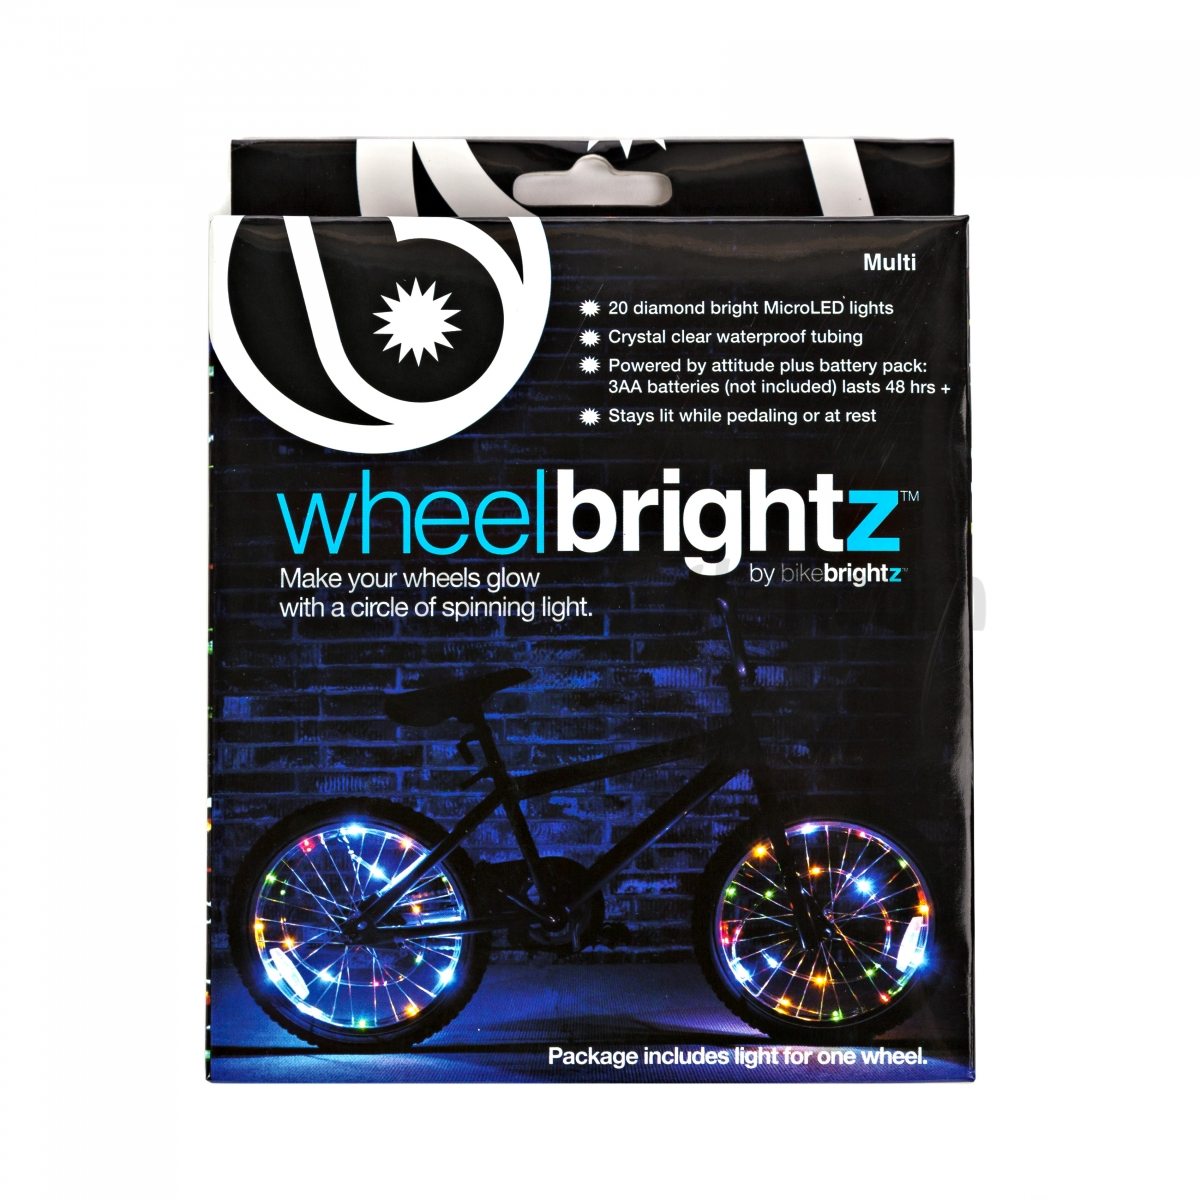 Wheel Brightz Lightweight LED Bicycle Safety Light Multicolored